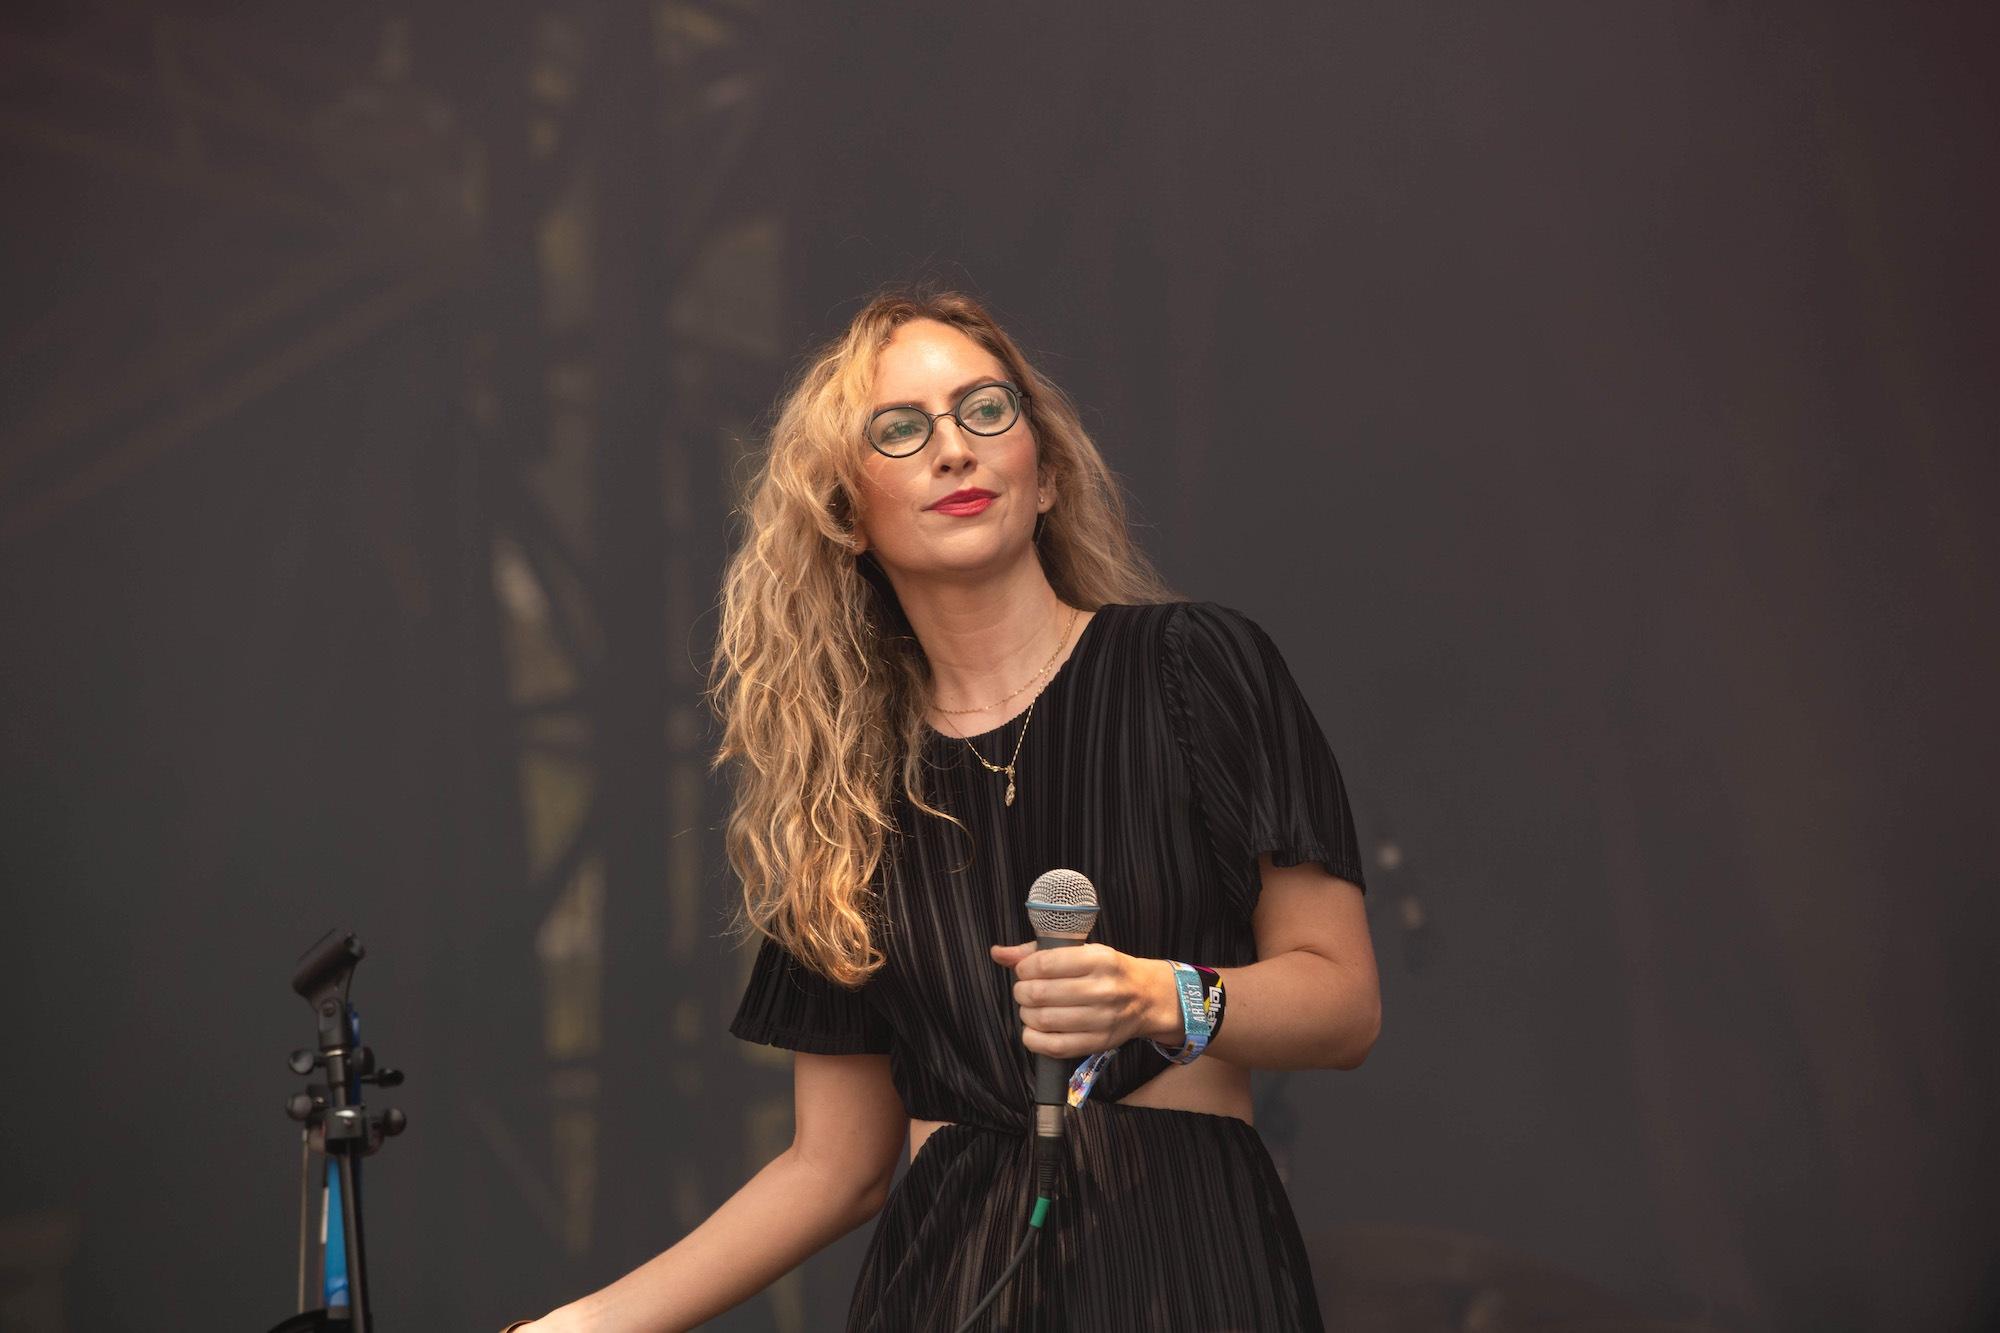 Chiiild Live at Lollapalooza [GALLERY] 8